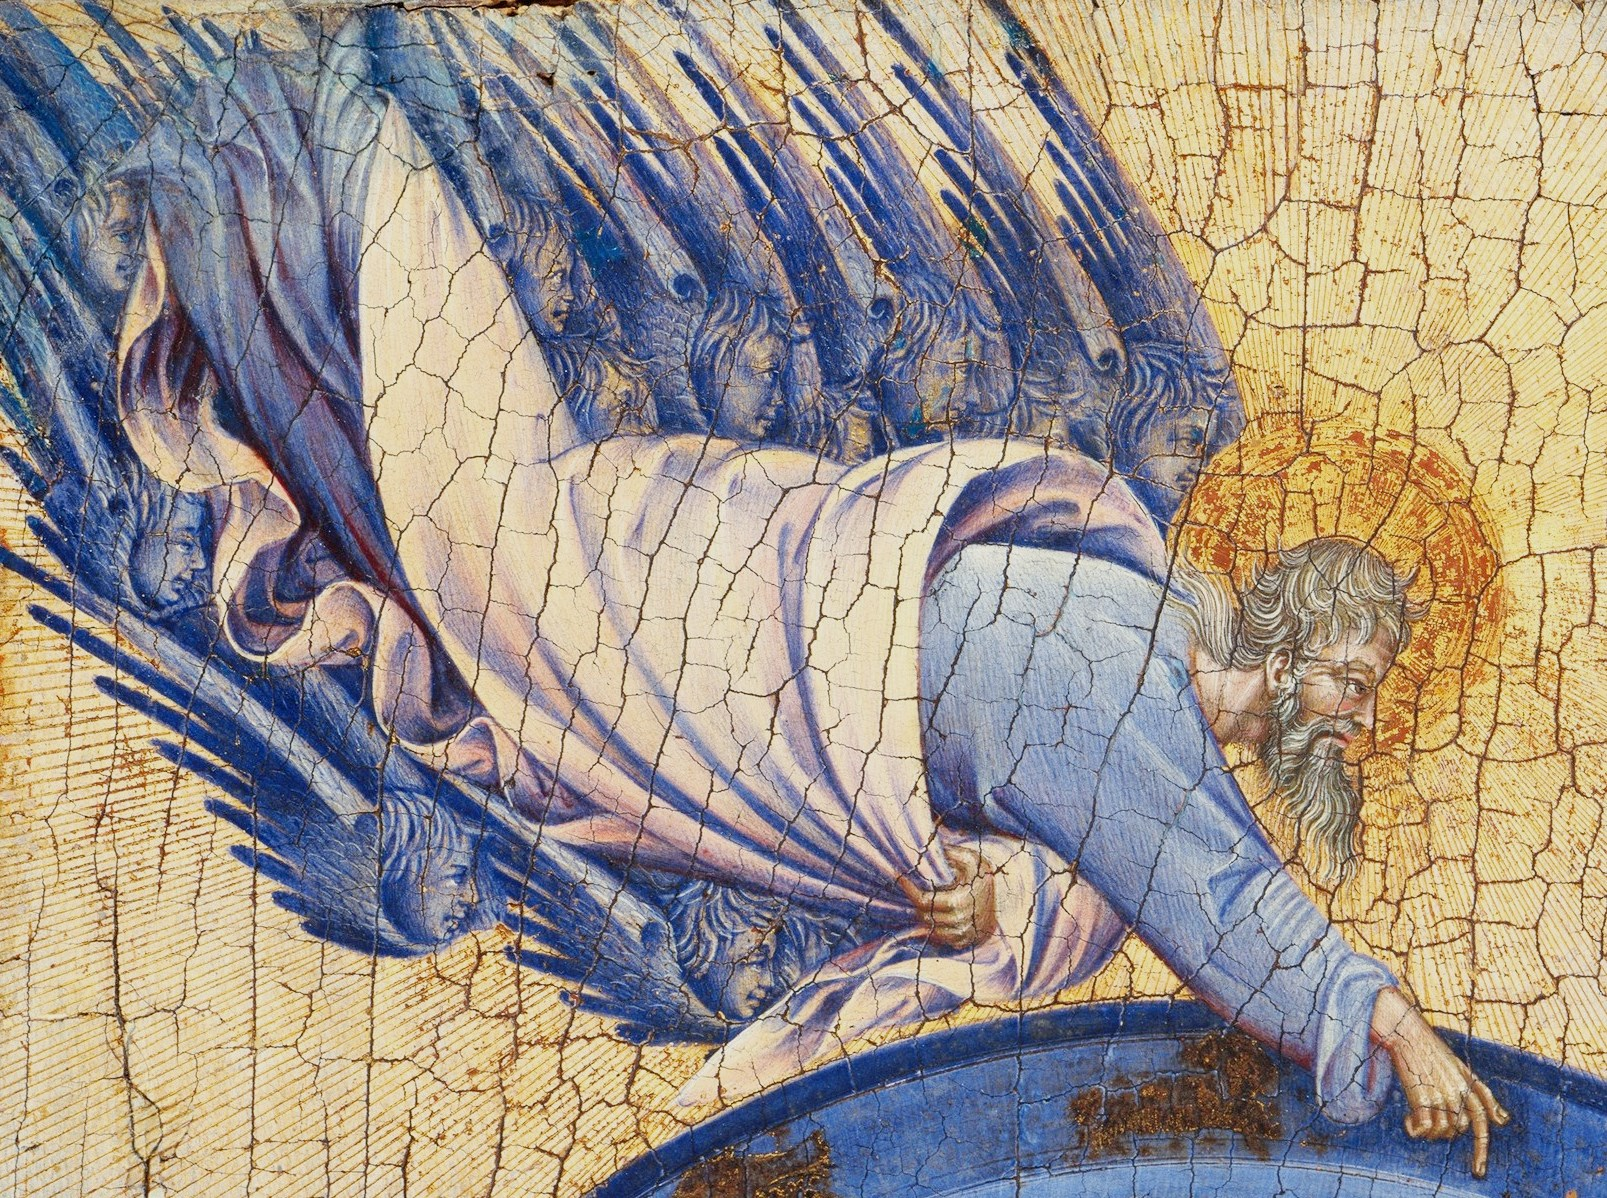 giovanni-di-paolo-creation-and-the-expulsion-from-the-paradise-1445c-det.jpg